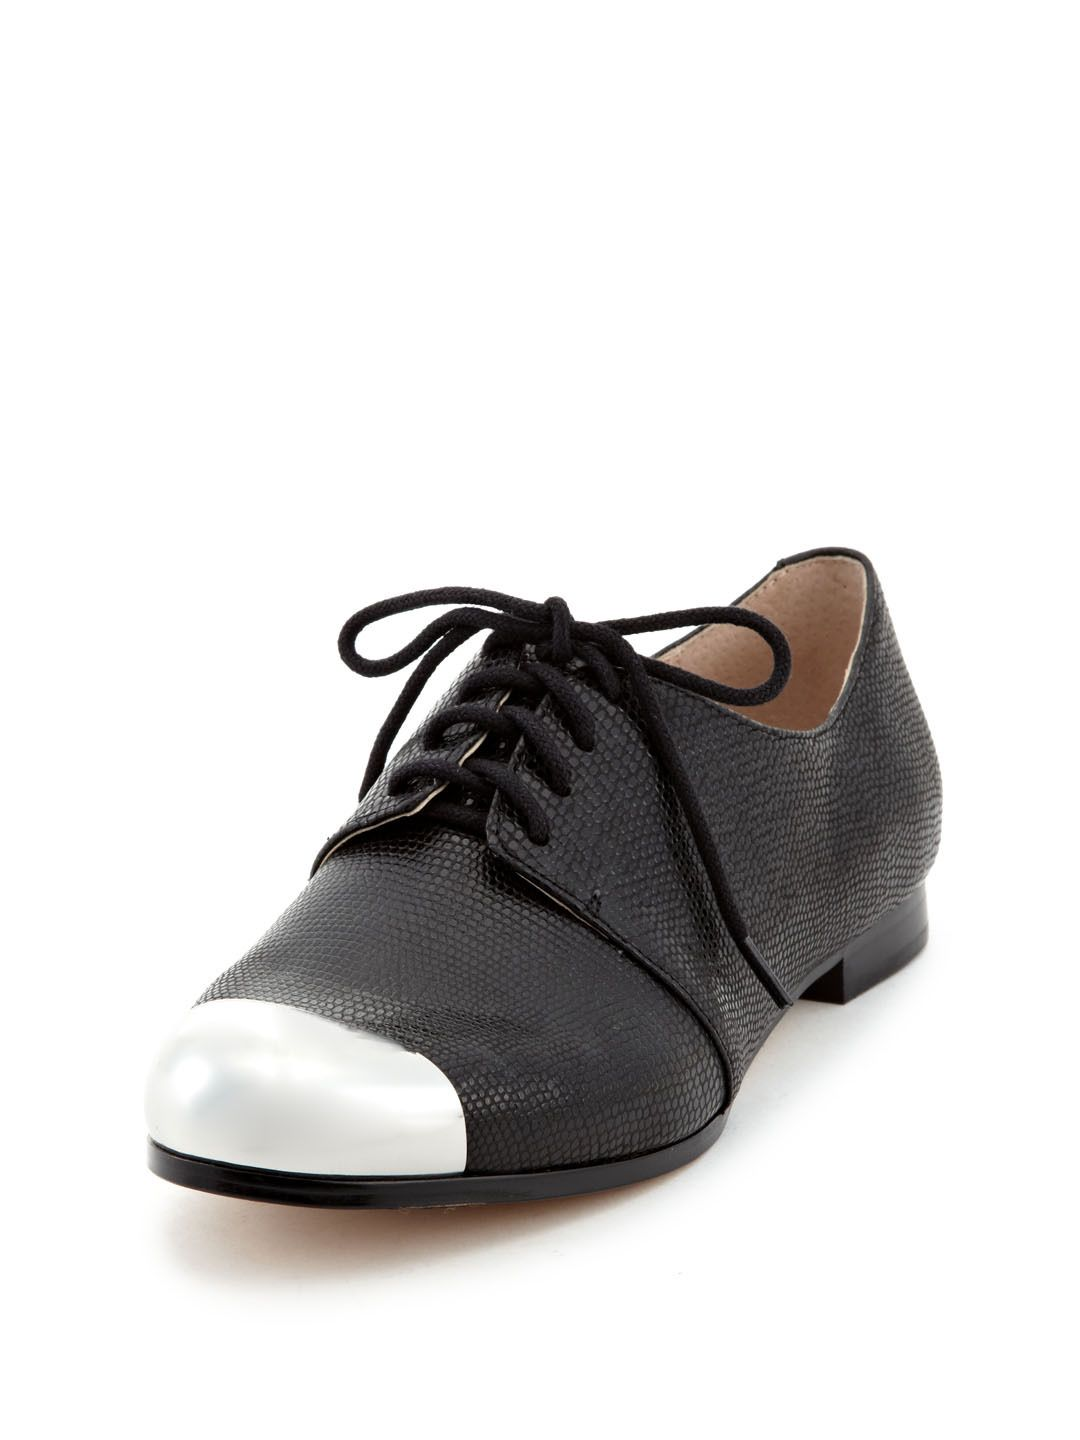 Sammi Oxford by French Connection at Gilt